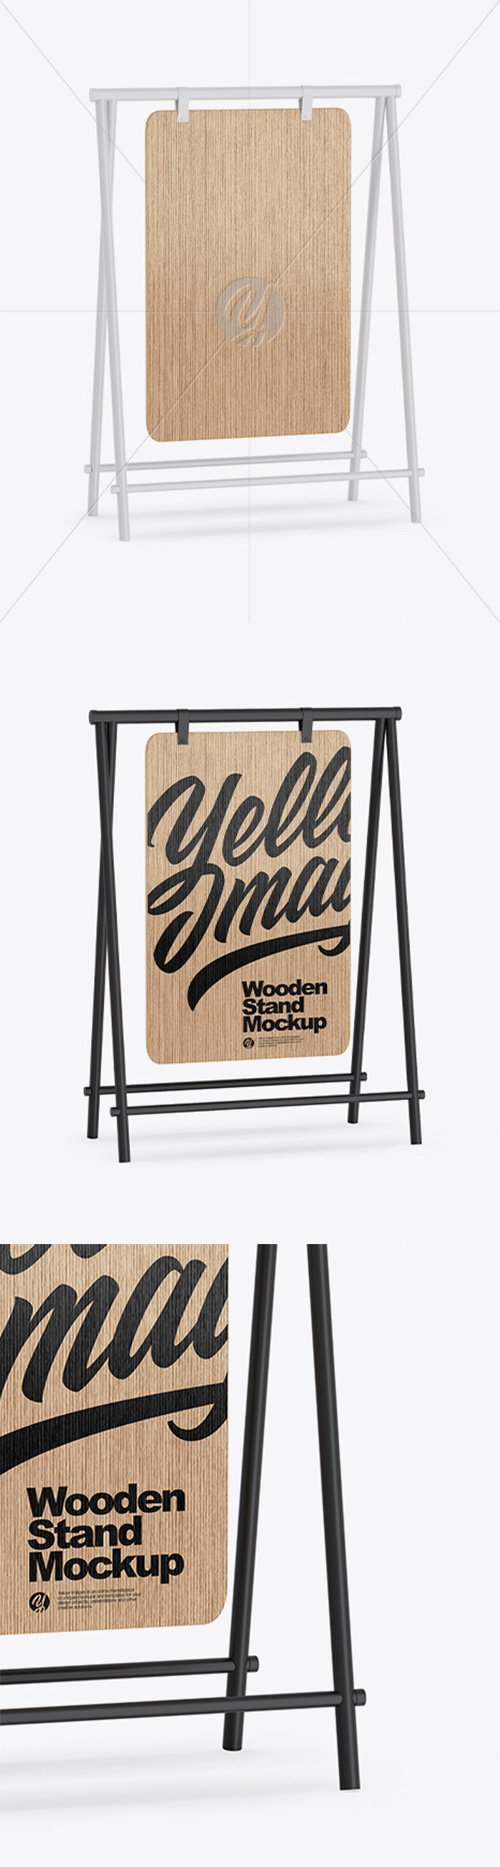 Wooden Stand Mockup 64332